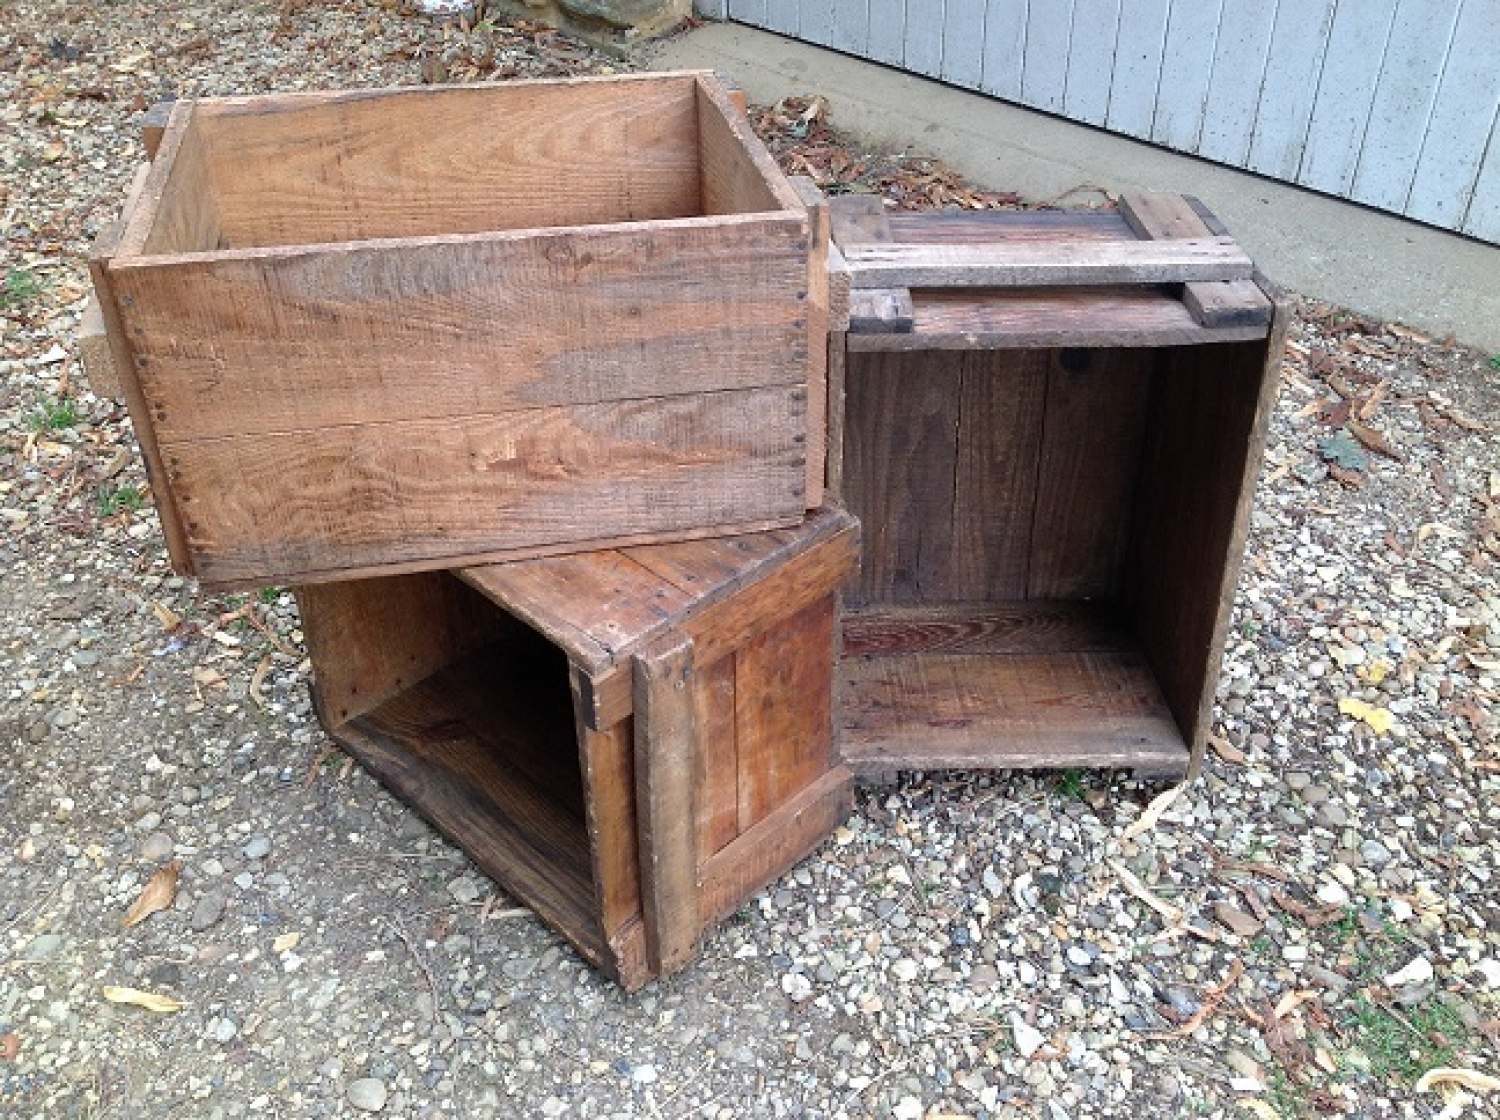 Vintage French crates